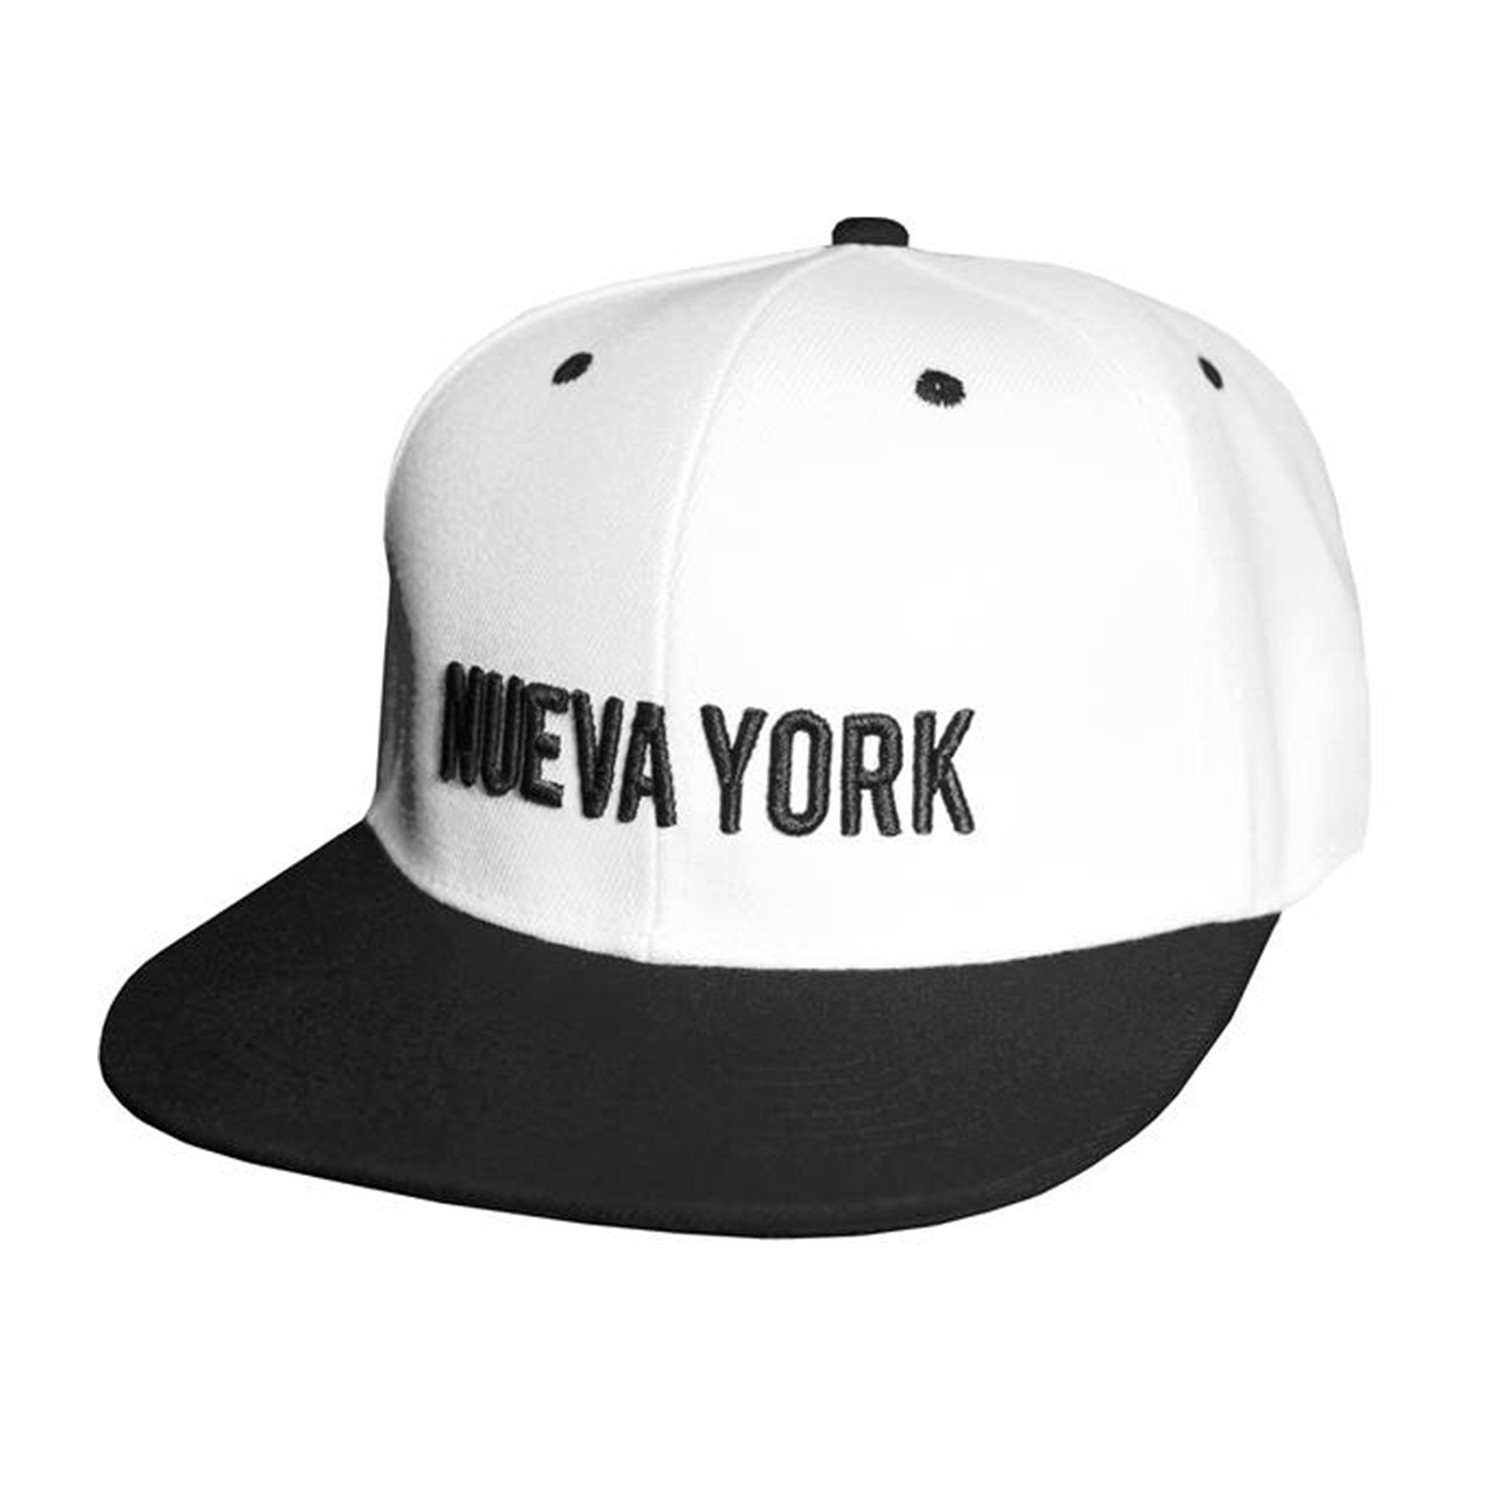 Nueva York    Black + White - Papá Originals Baseball Hats - Touch ... 44530212d5f0